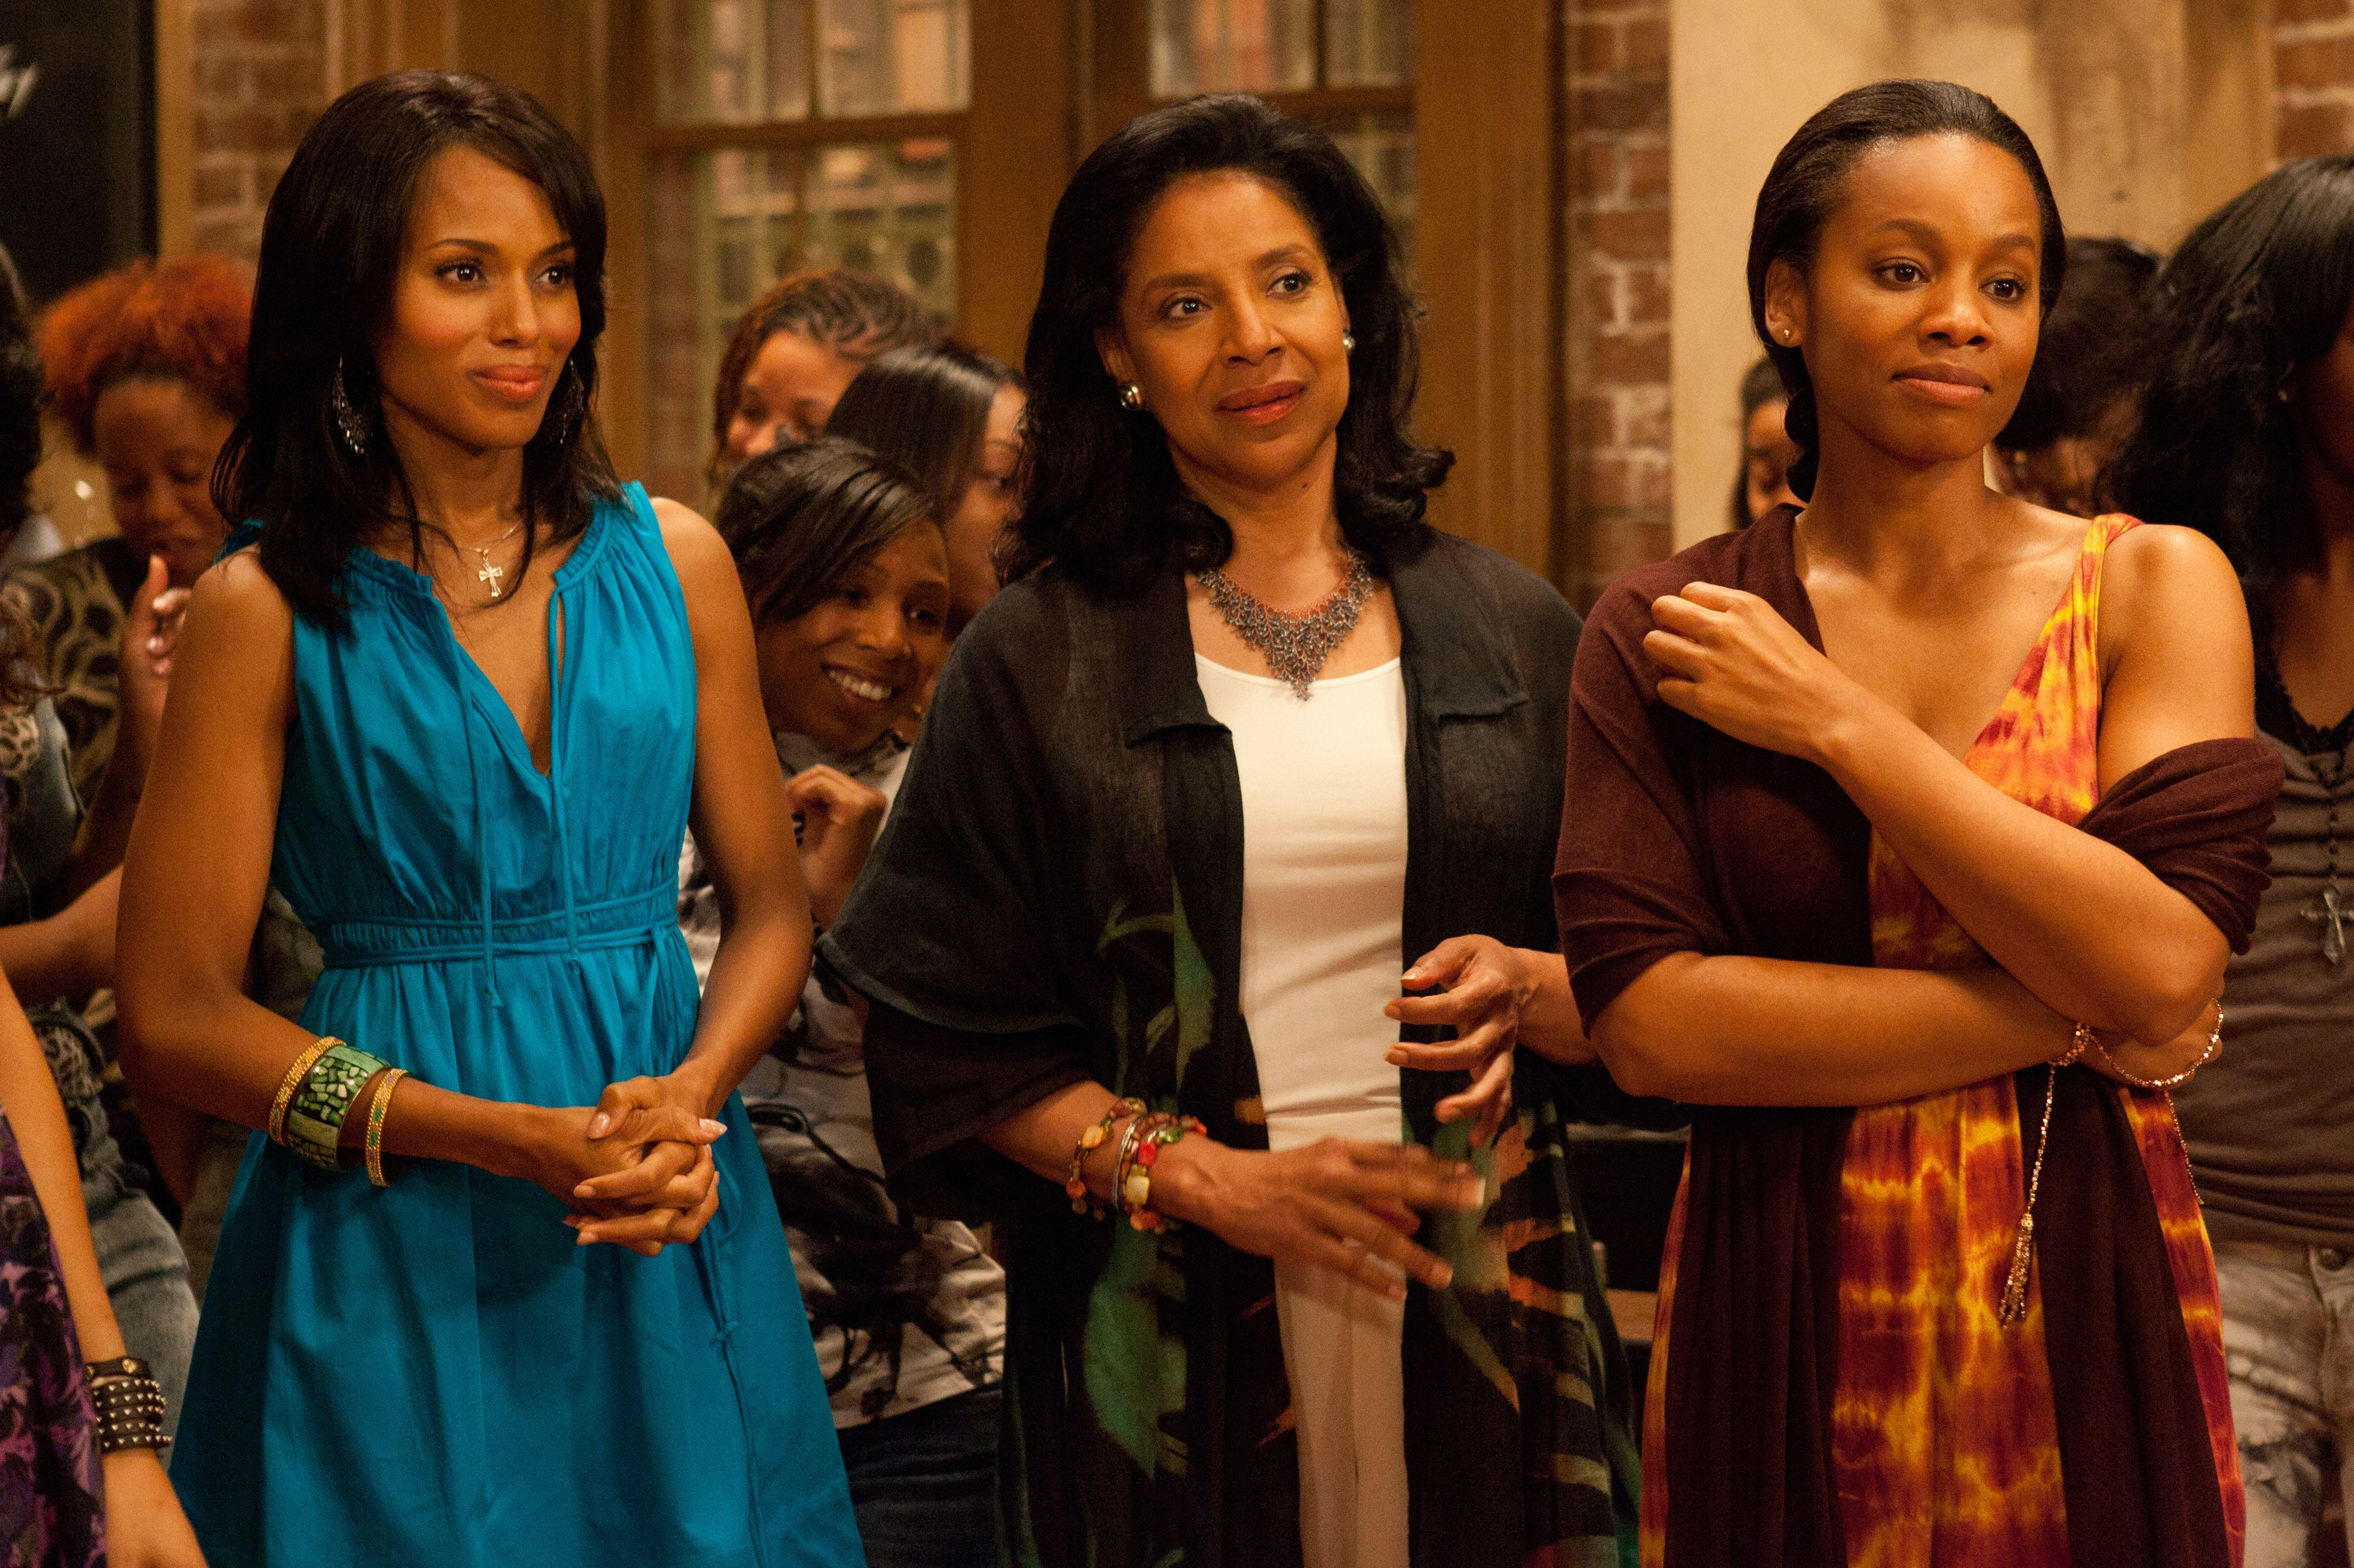 For colored girls movie poster #10